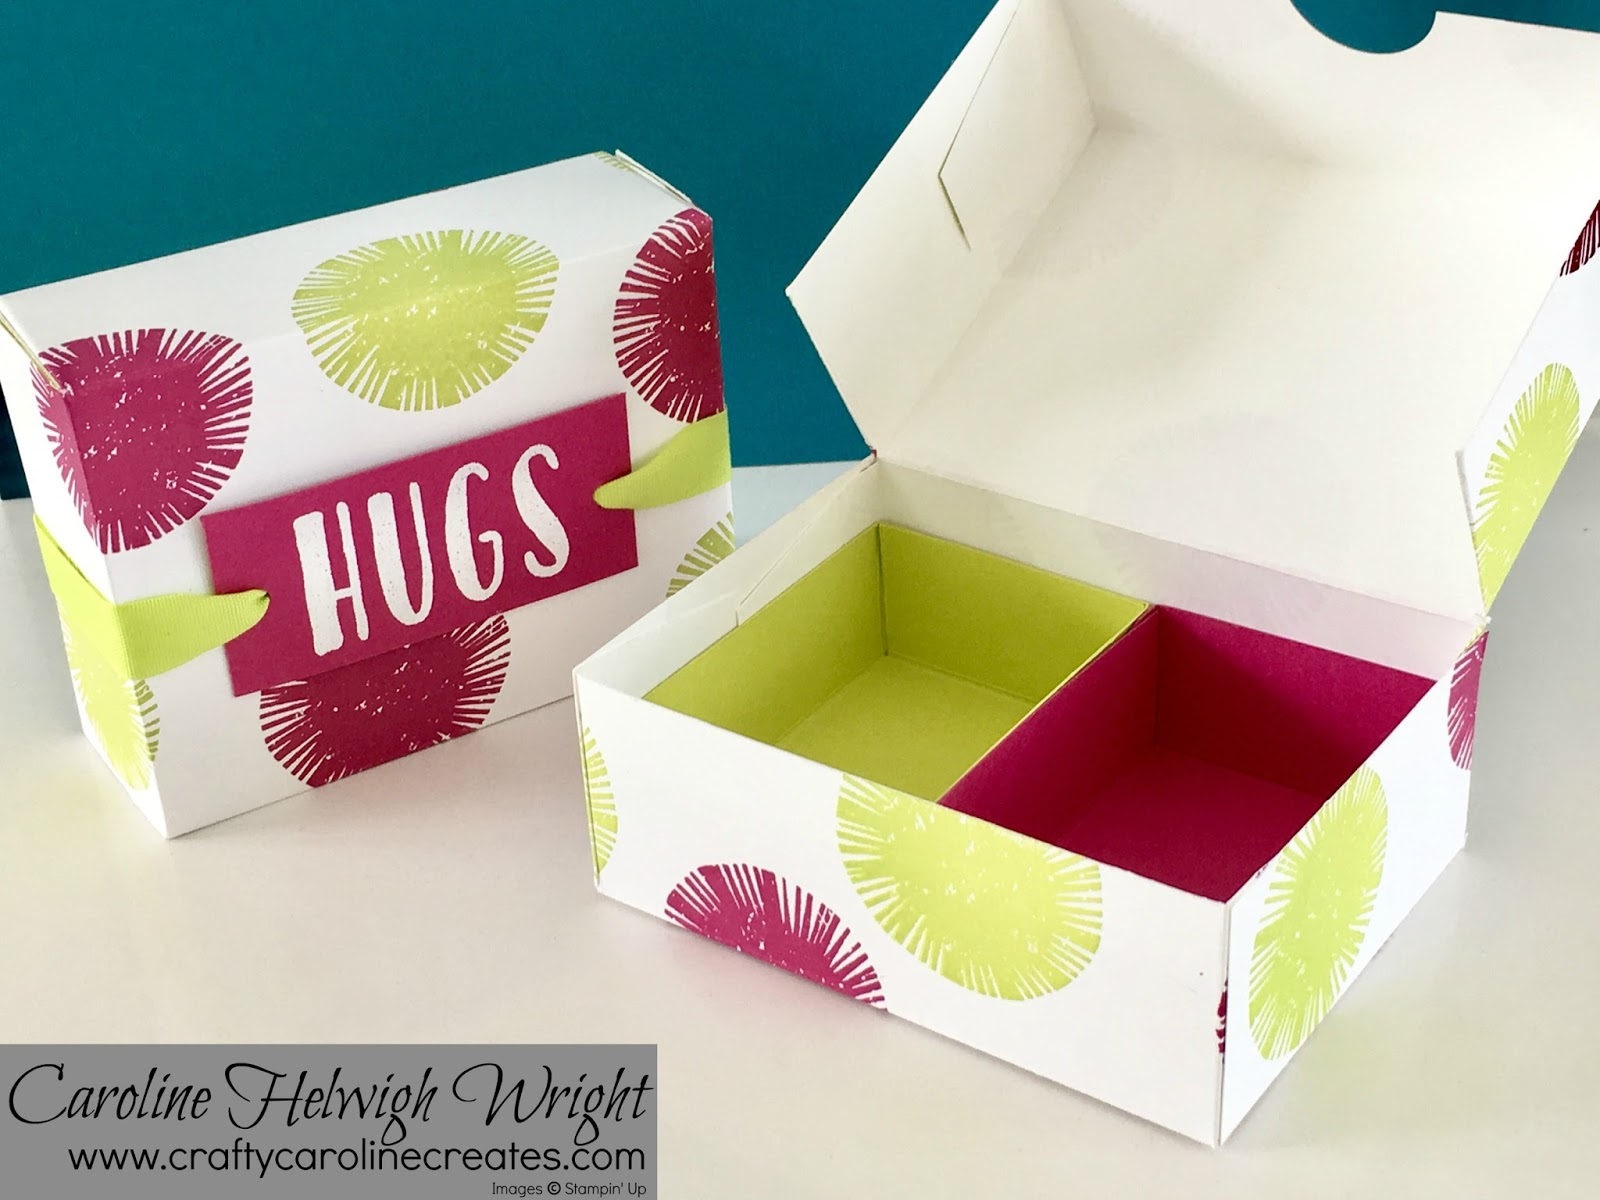 Craftycarolinecreates Lovely Inside And Out Partitioned Gift Box